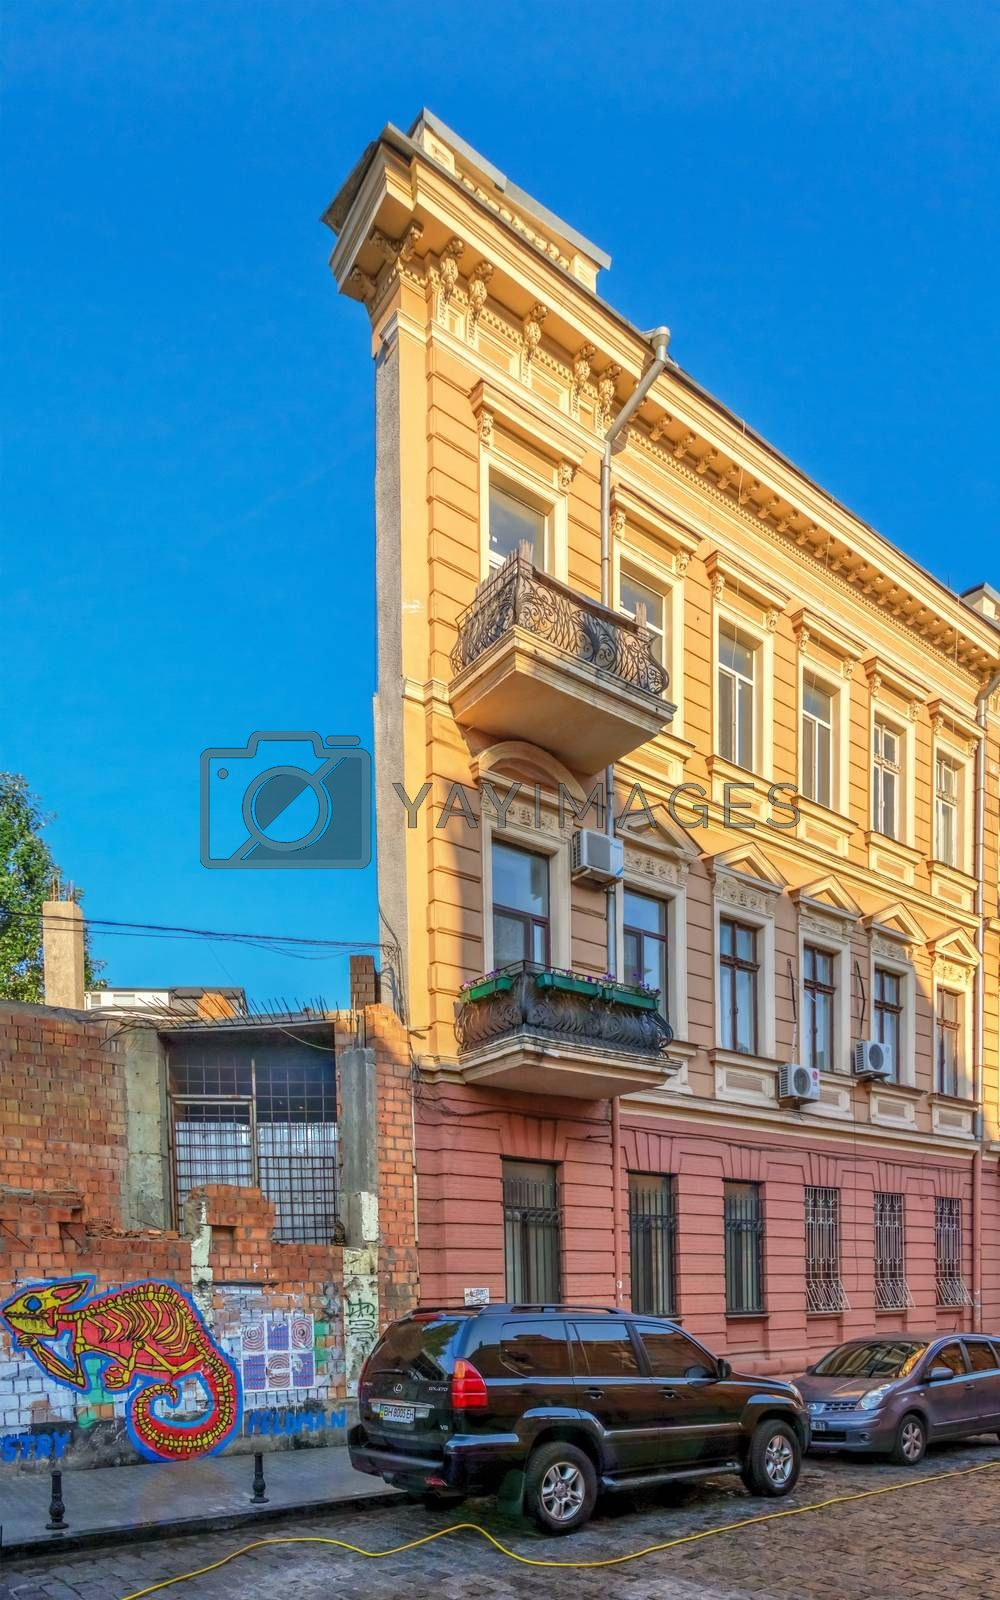 Odessa, Ukraine 06.30.2020. House with one wall in the historical center of Odessa, Ukraine, on a sunny summer morning